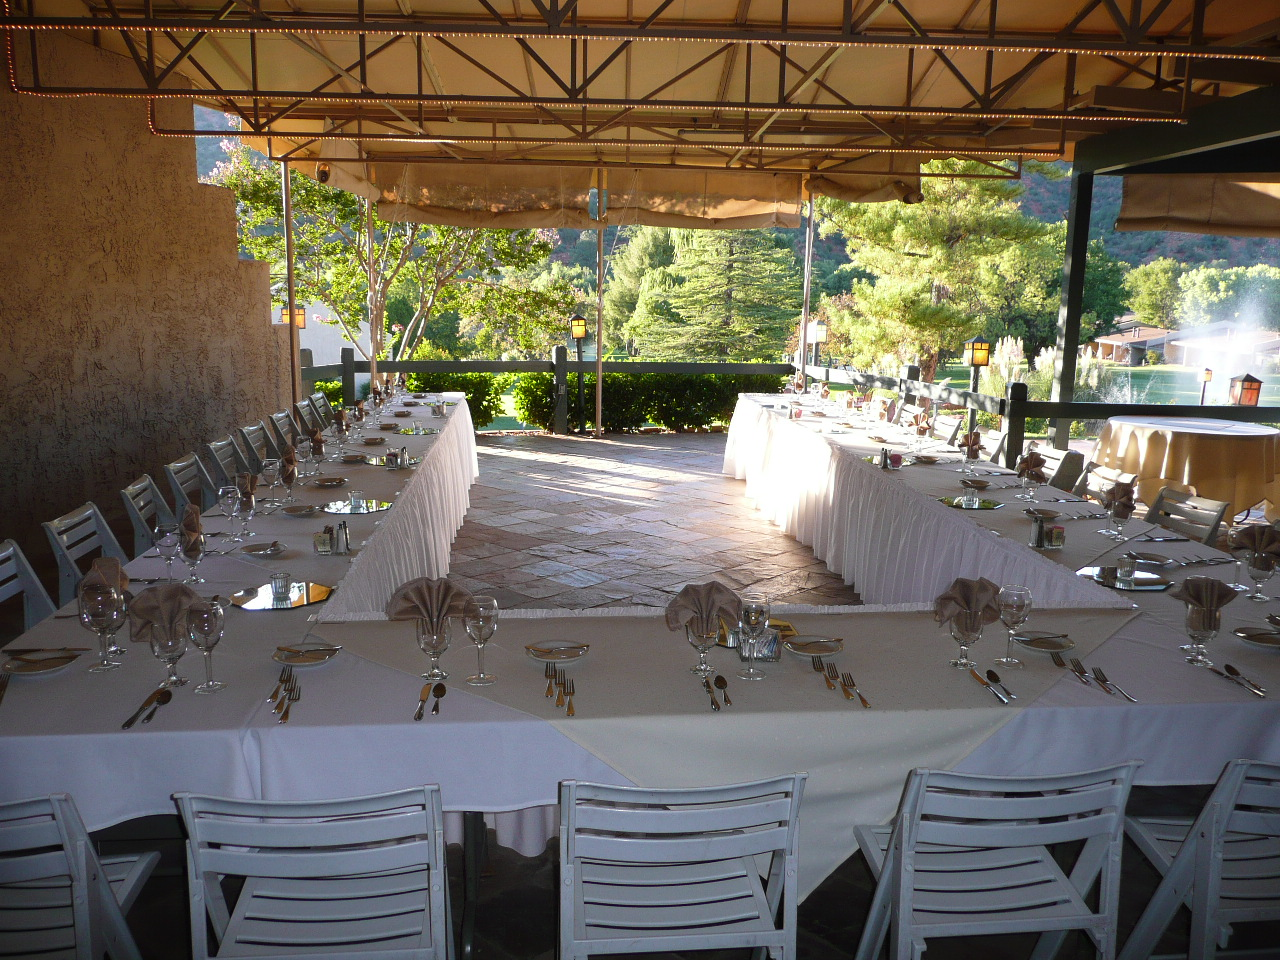 patio folding chairs padded dining room chair covers with buttons weddings at poco diablo resort in sedona | sedona, arizona